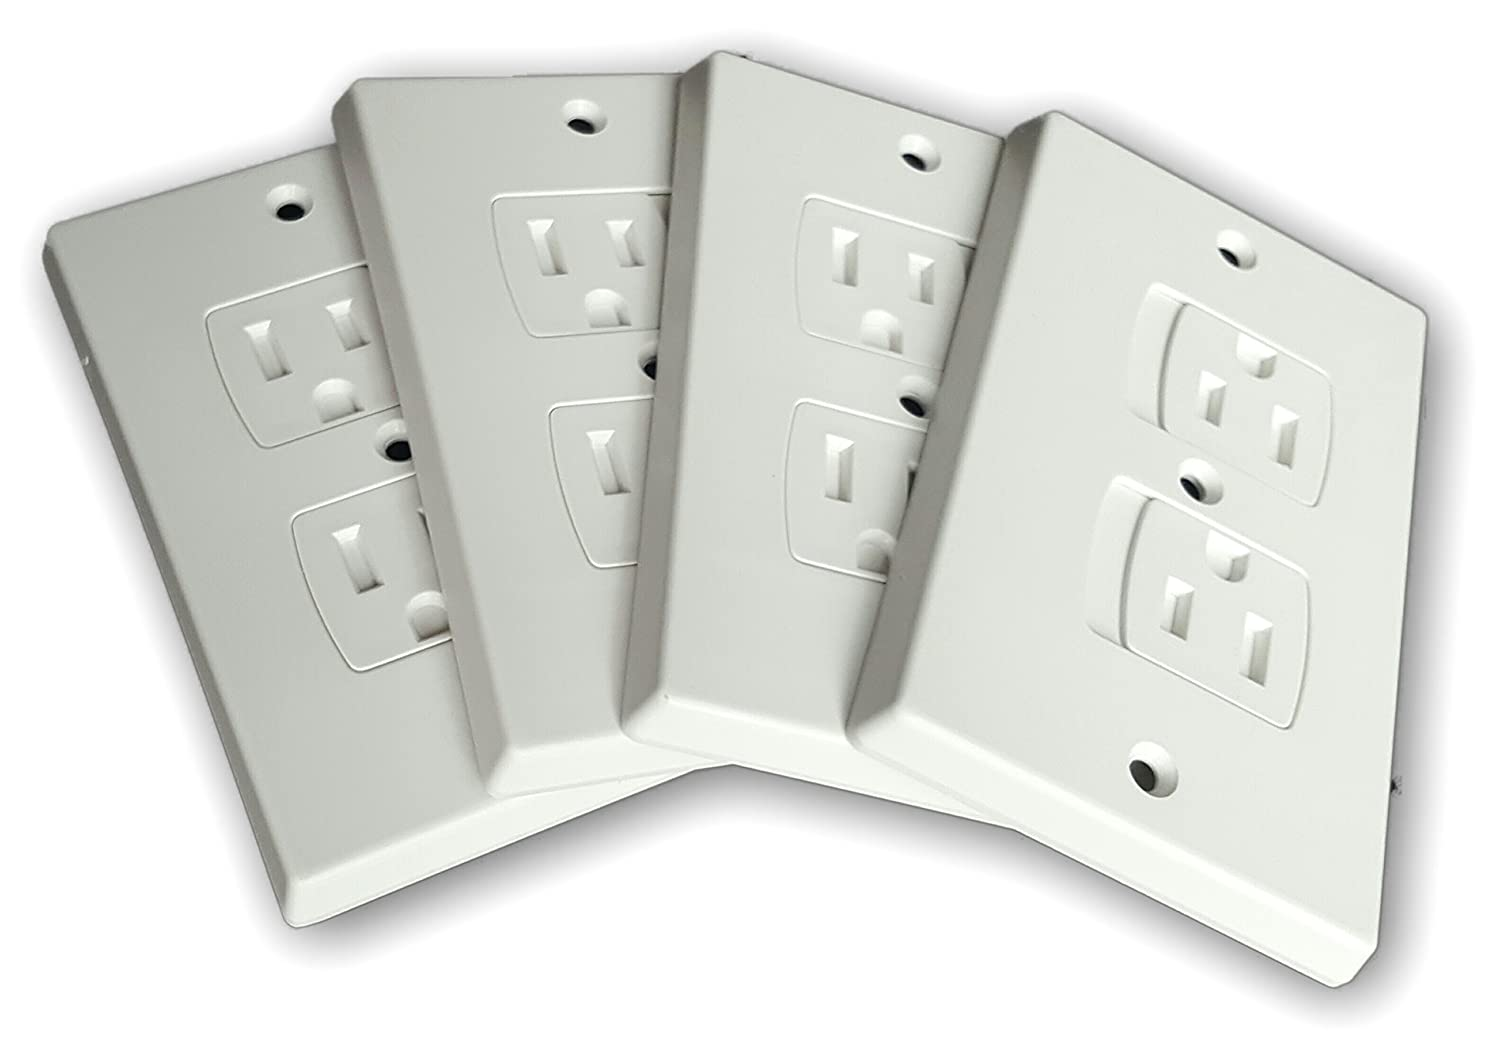 WONDERKID Self-Closing Electrical Outlet Covers for Baby Proofing - White - 4 Pack